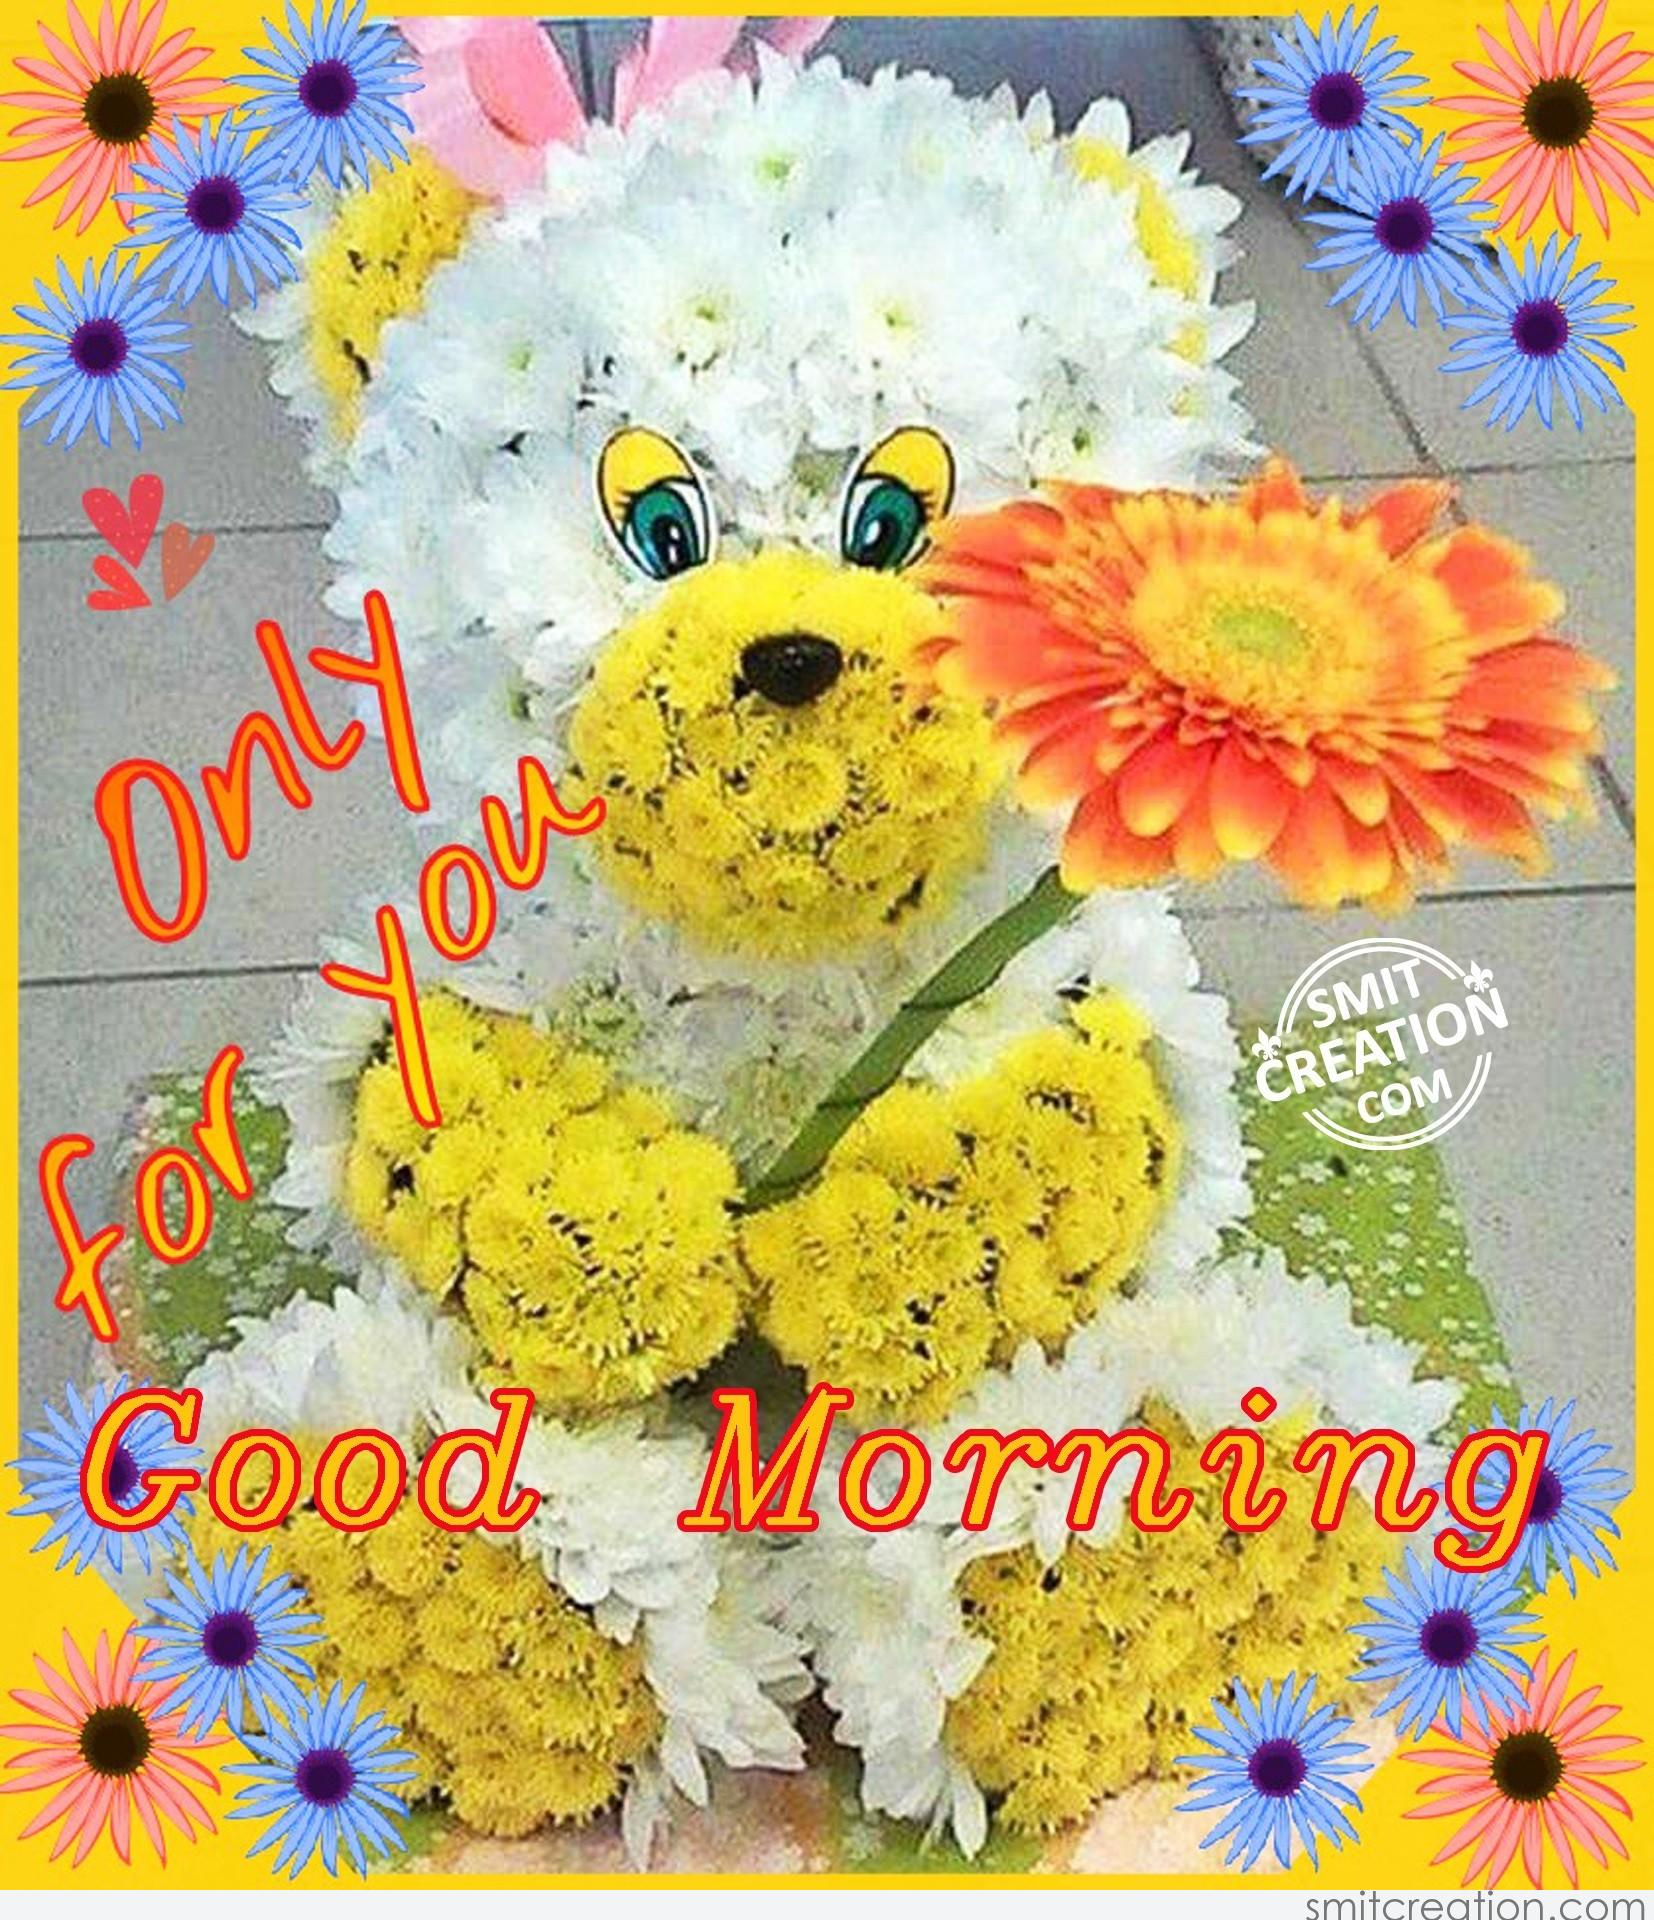 Only For You Good Morning Smitcreationcom